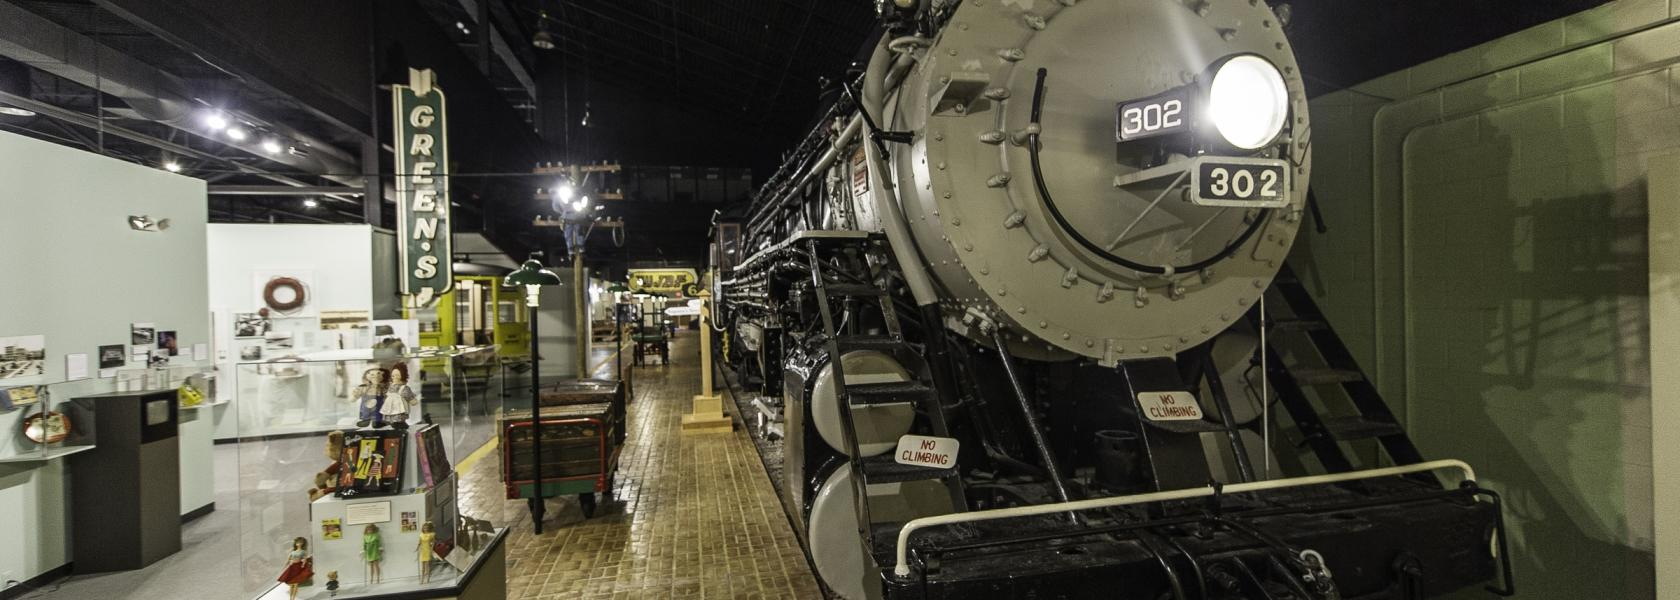 Augusta Museum of History train